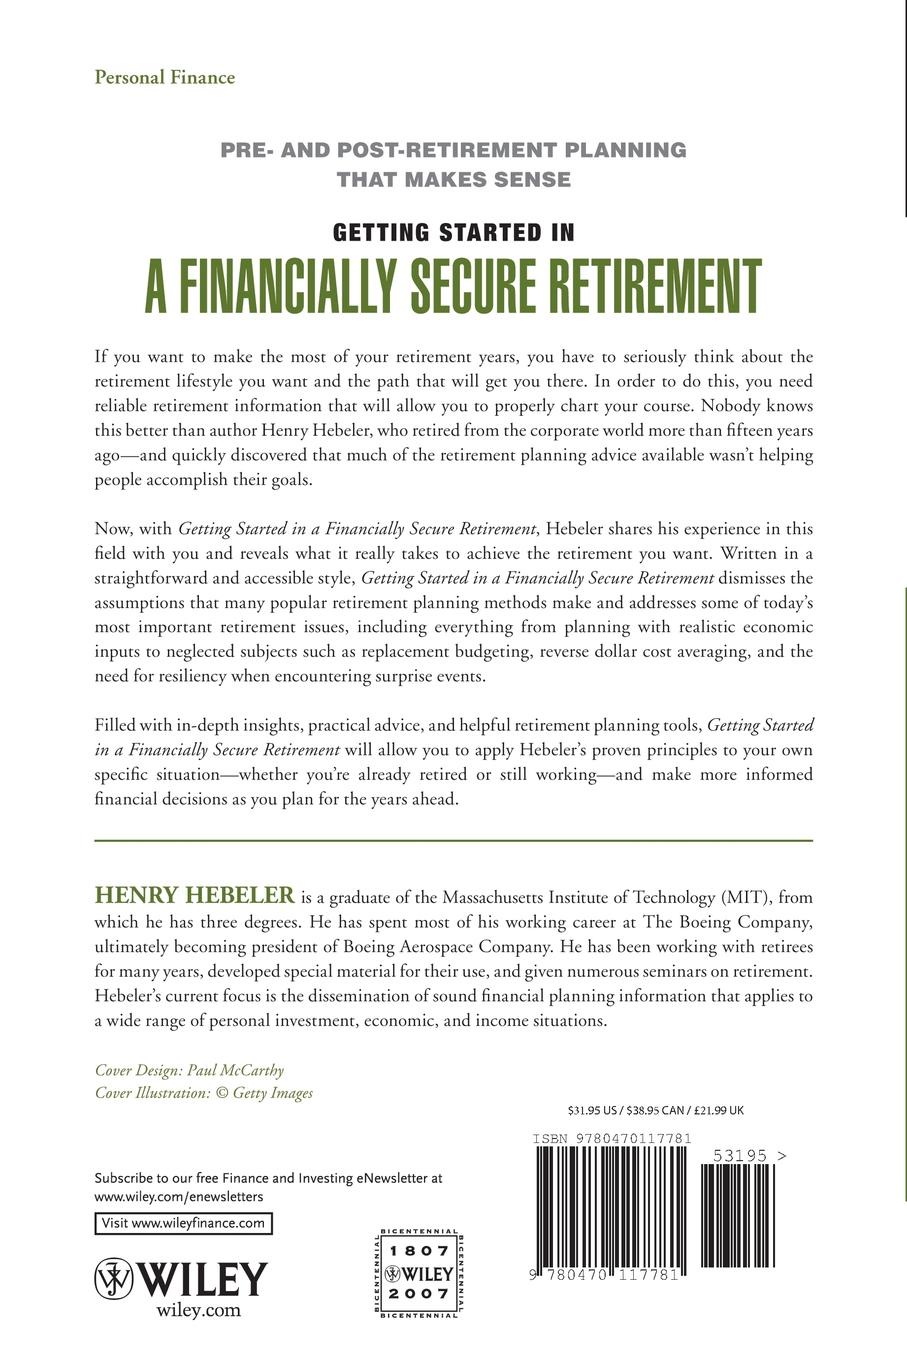 Henry K. Hebeler Getting Started in a Financially Secure Retirement jeffrey rattiner h getting started as a financial planner